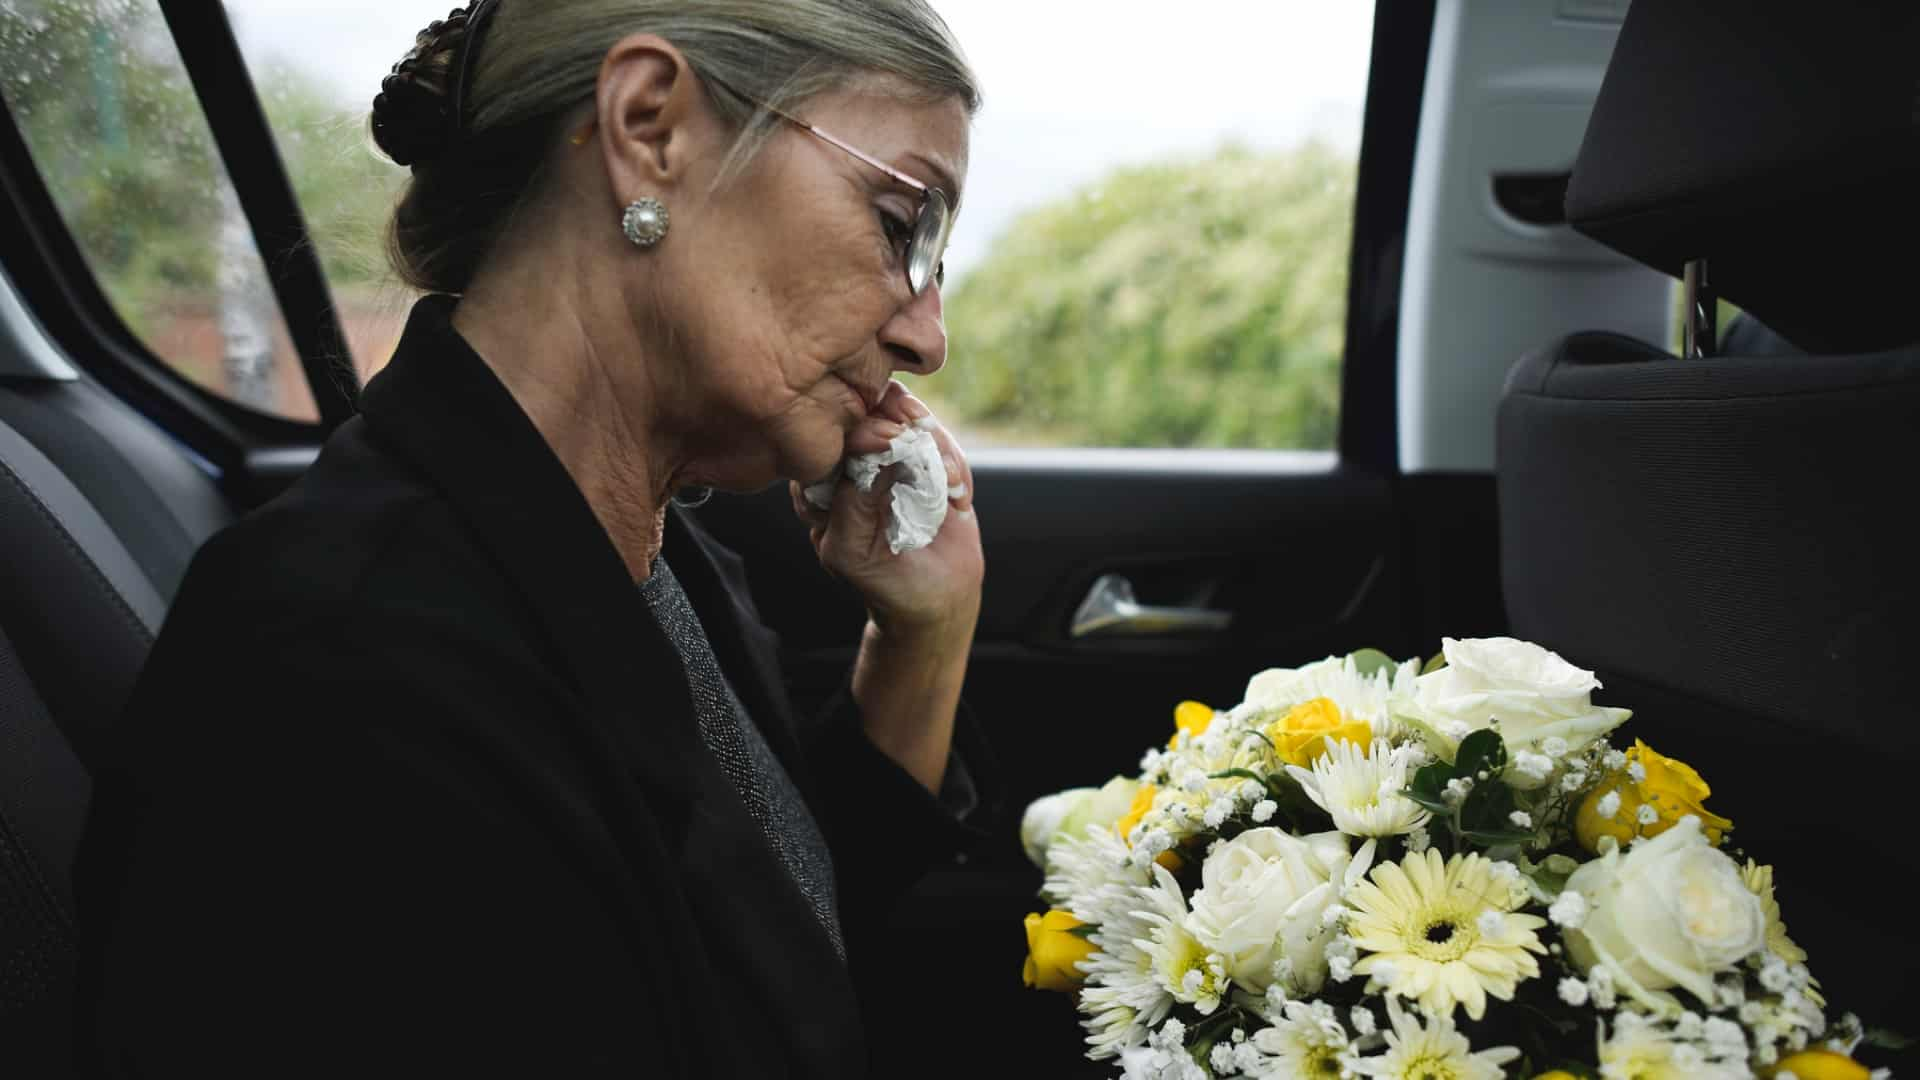 Funeral Limo Hire